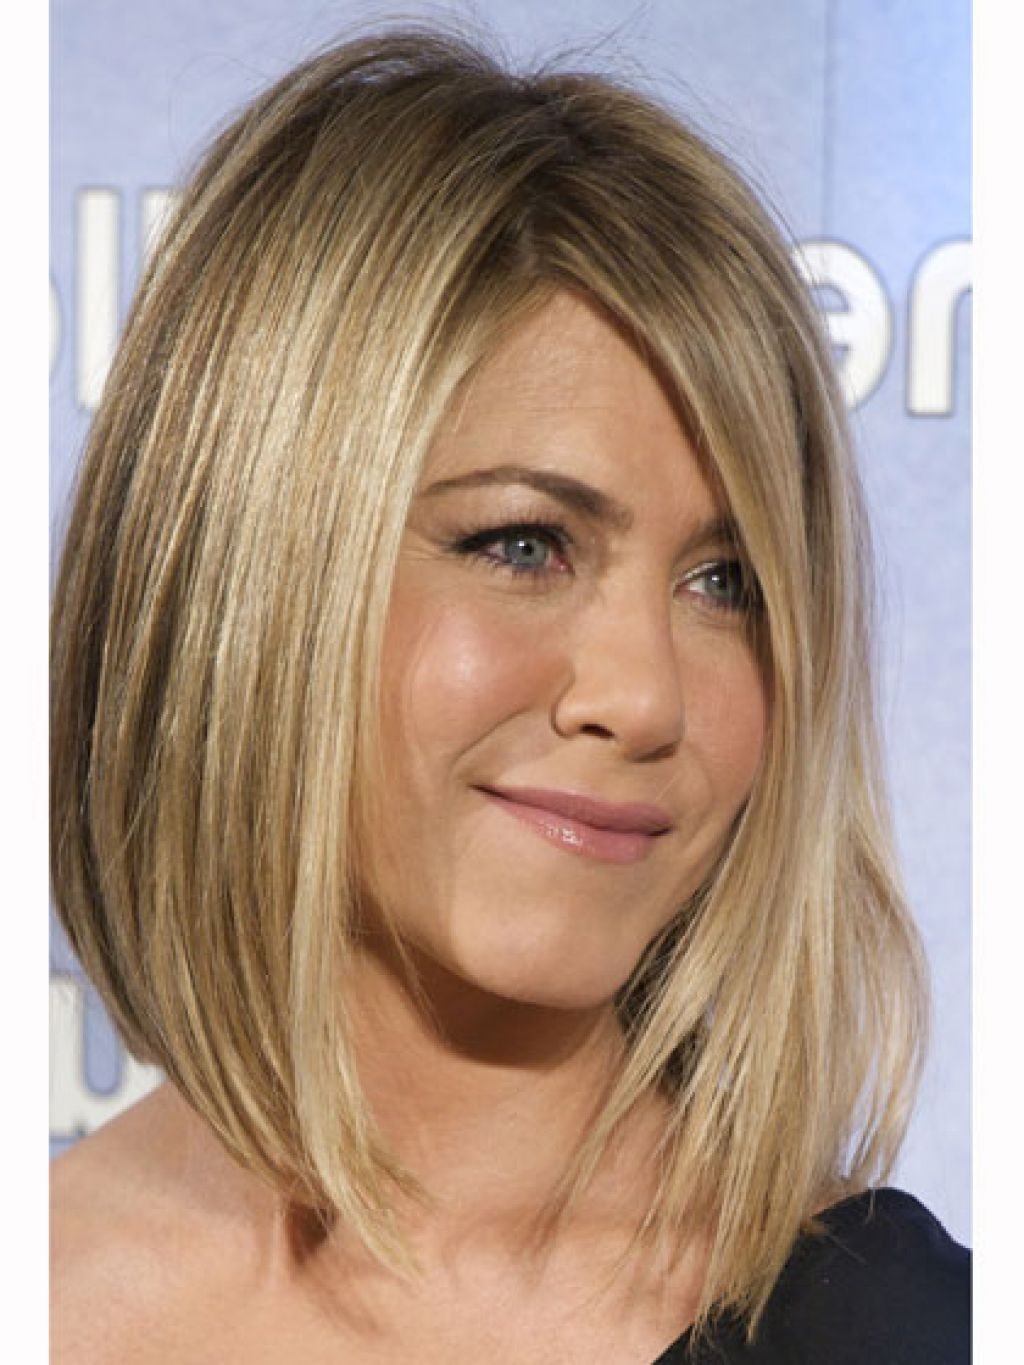 long angled bob- wish i could pull this off if i ever had the guts